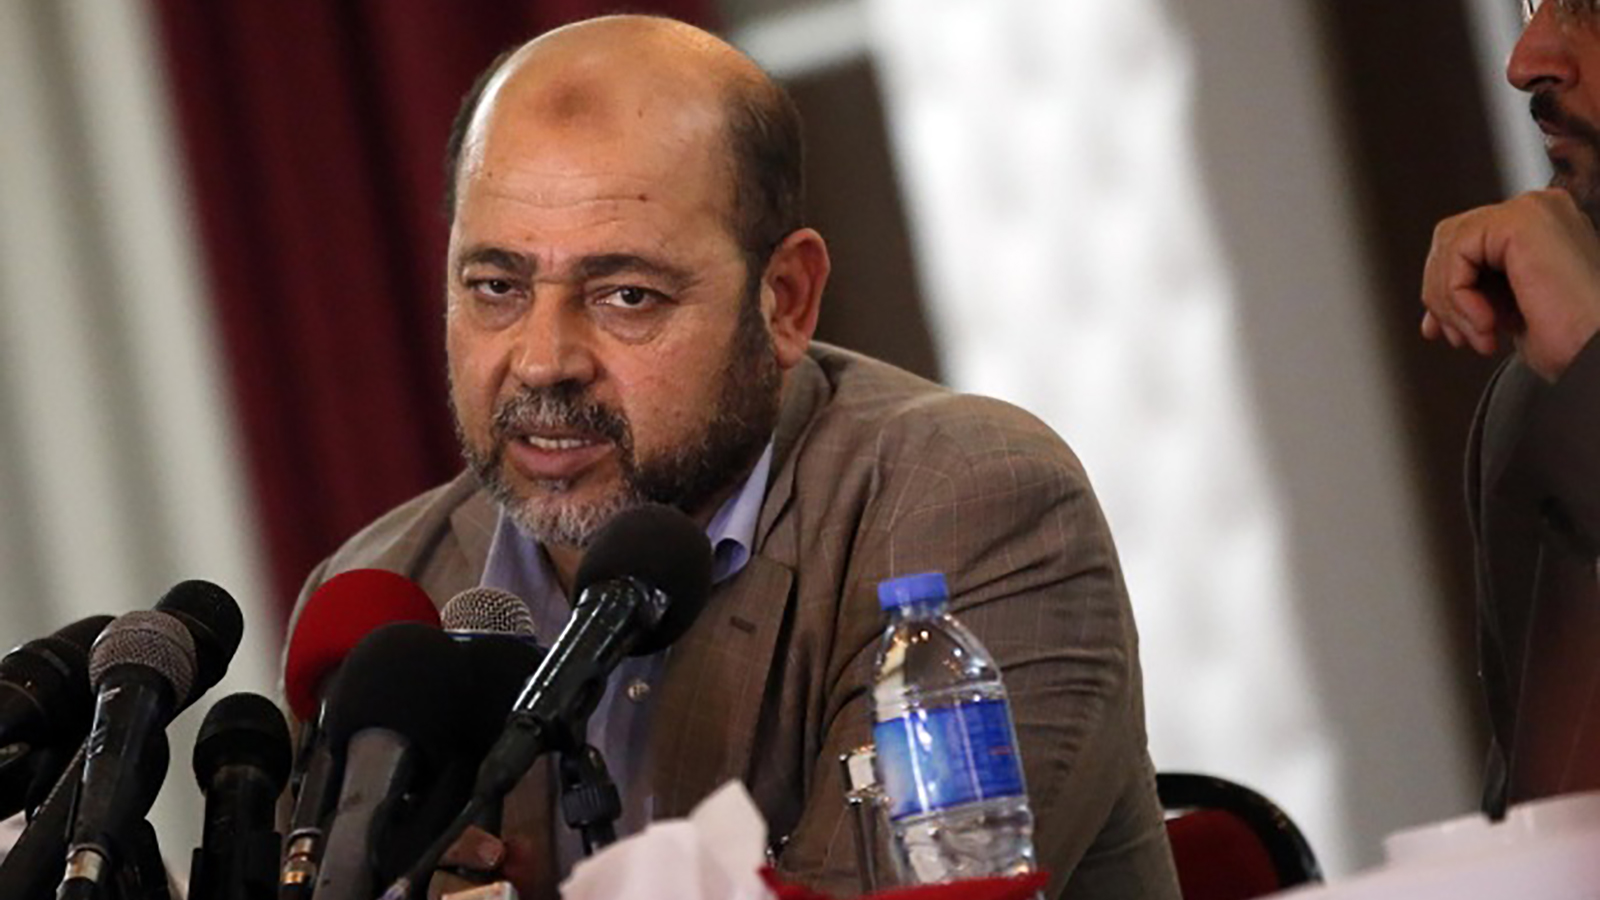 Hamas spokesman names demands for truce with Israel